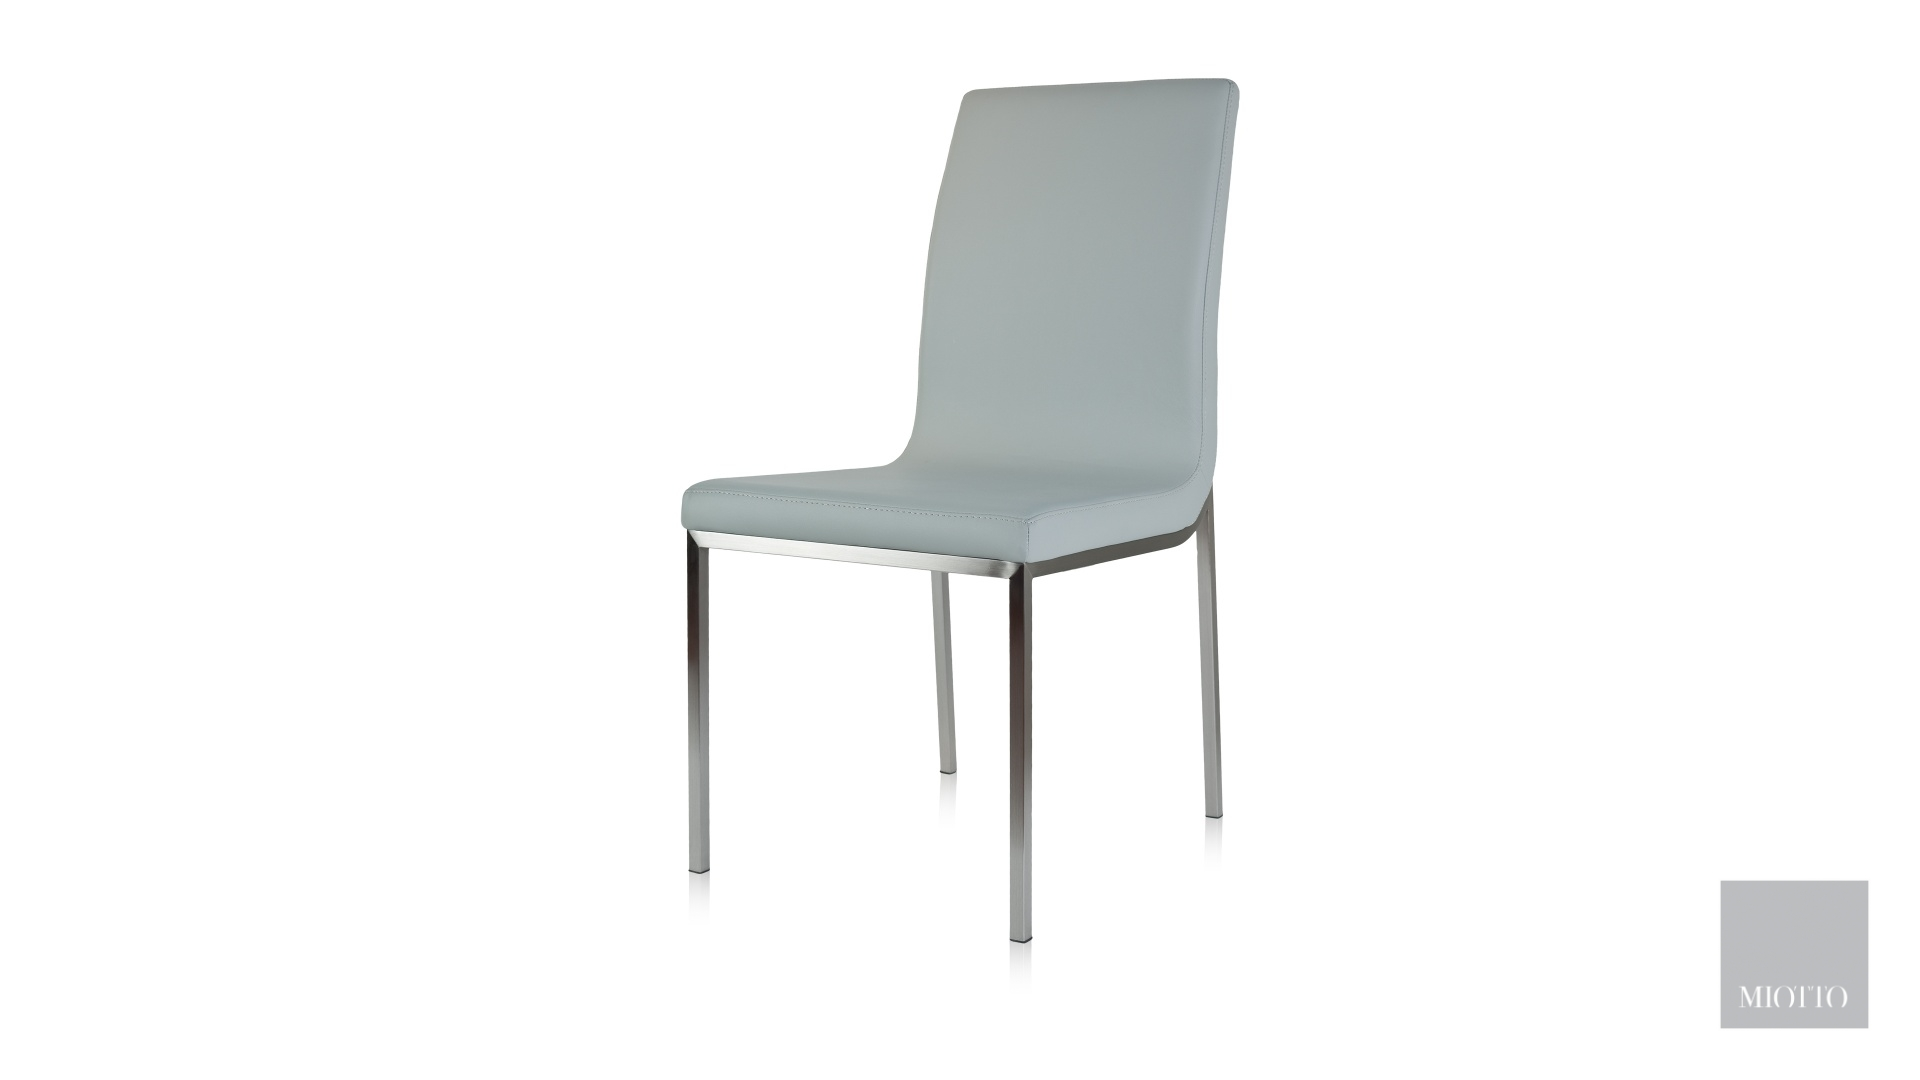 miotto_Turati dining chair miotto dining furniture1